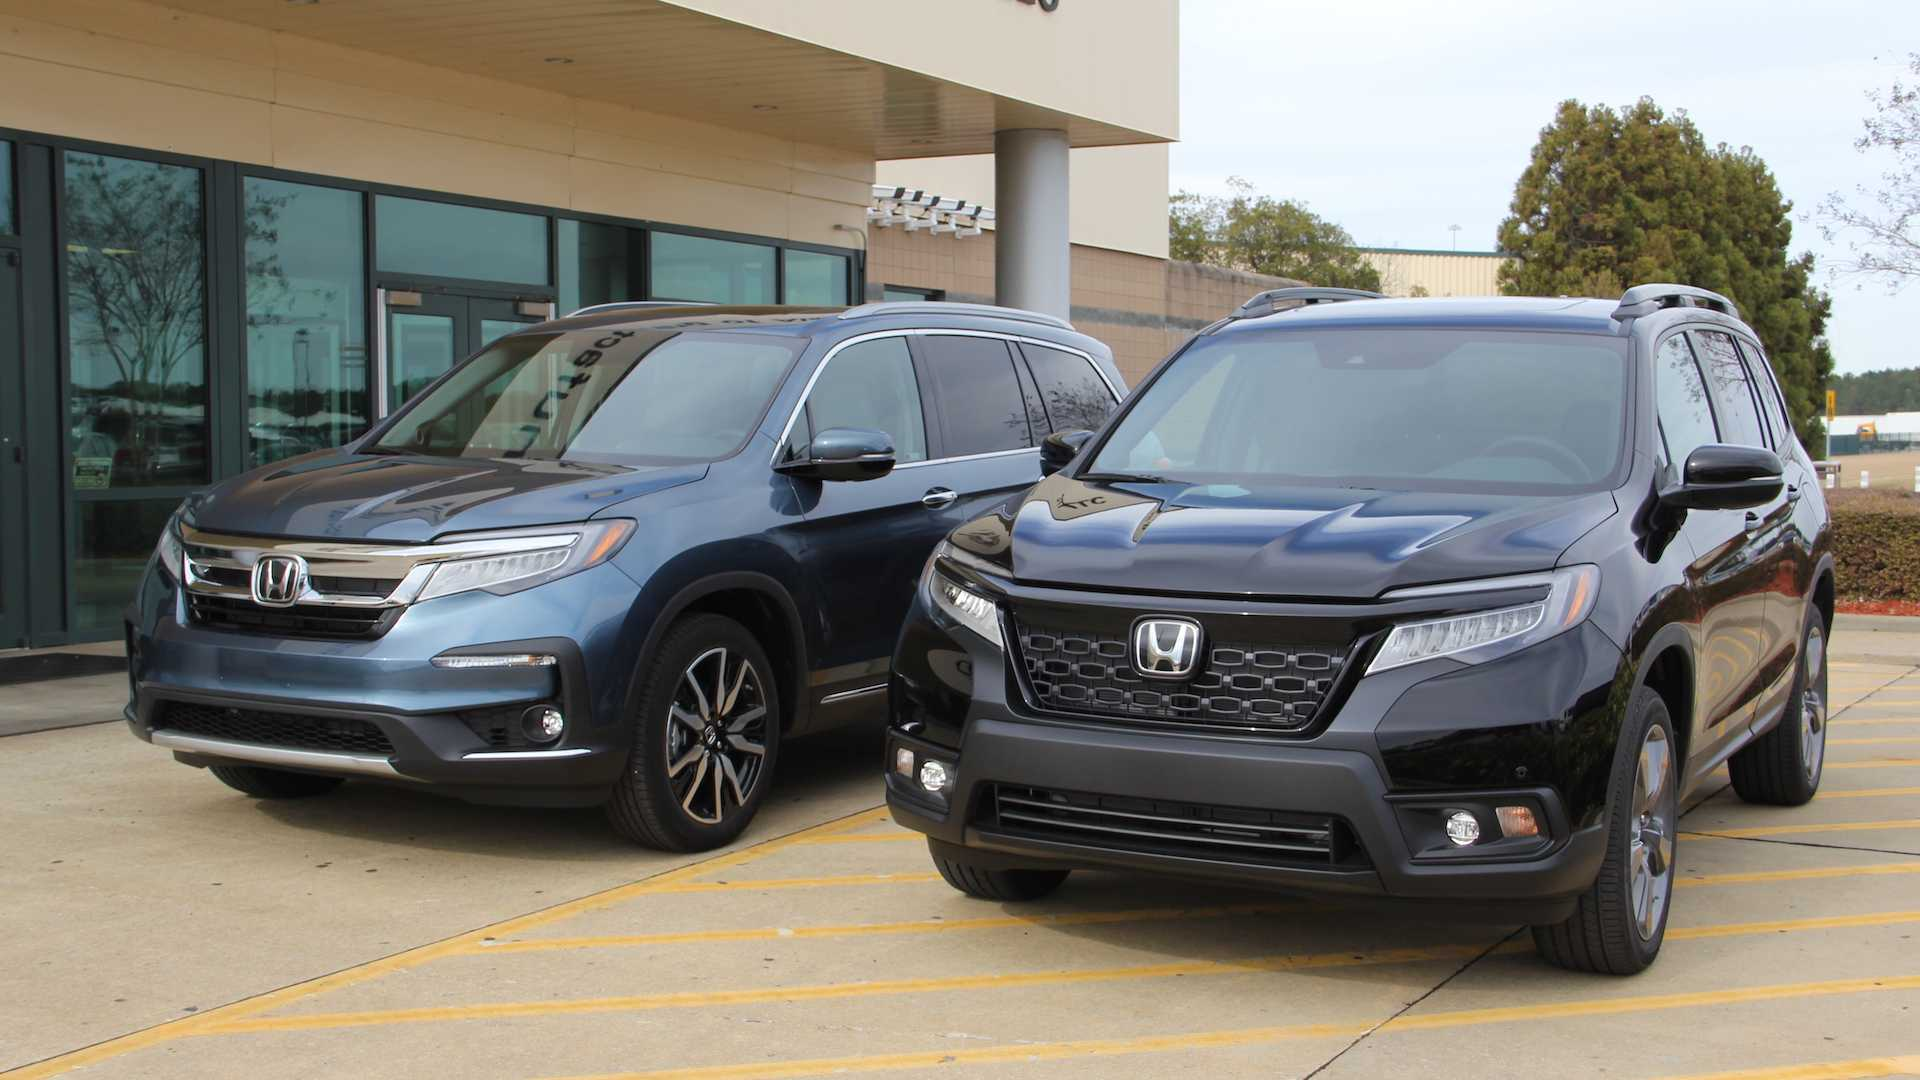 59 Great 2019 Honda Passport Reviews Performance with 2019 Honda Passport Reviews